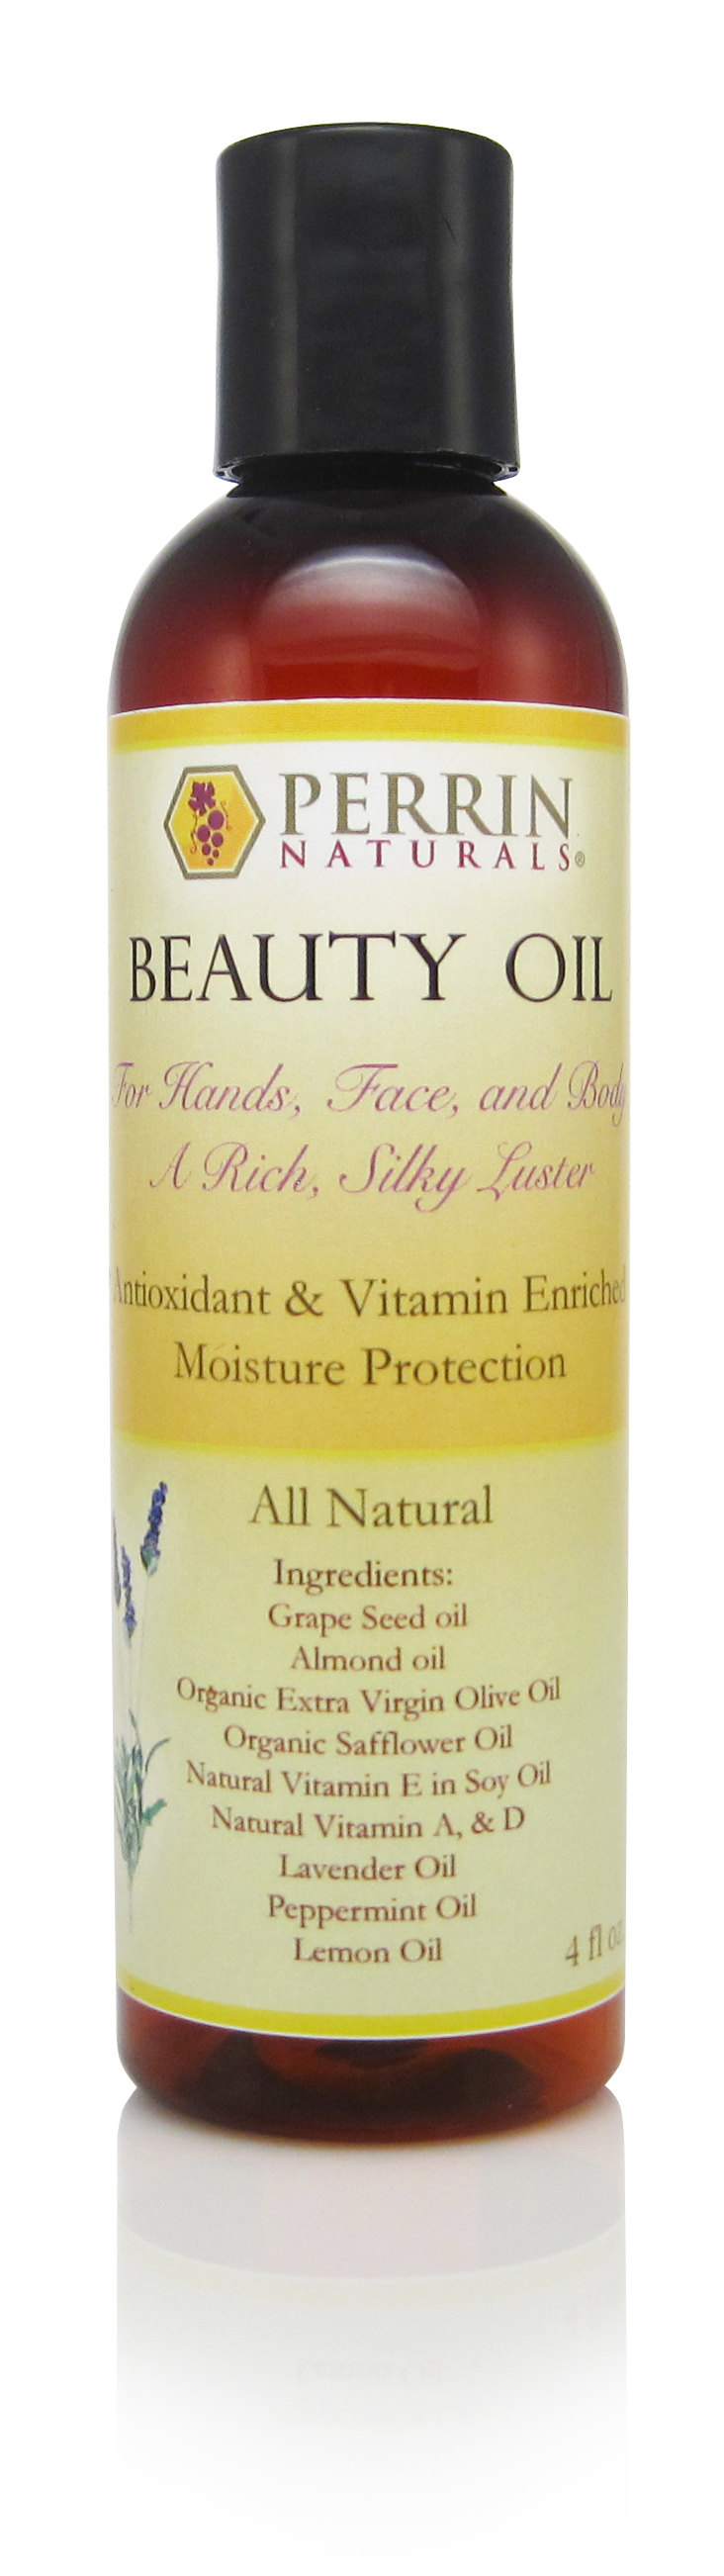 anti-aging beauty oil